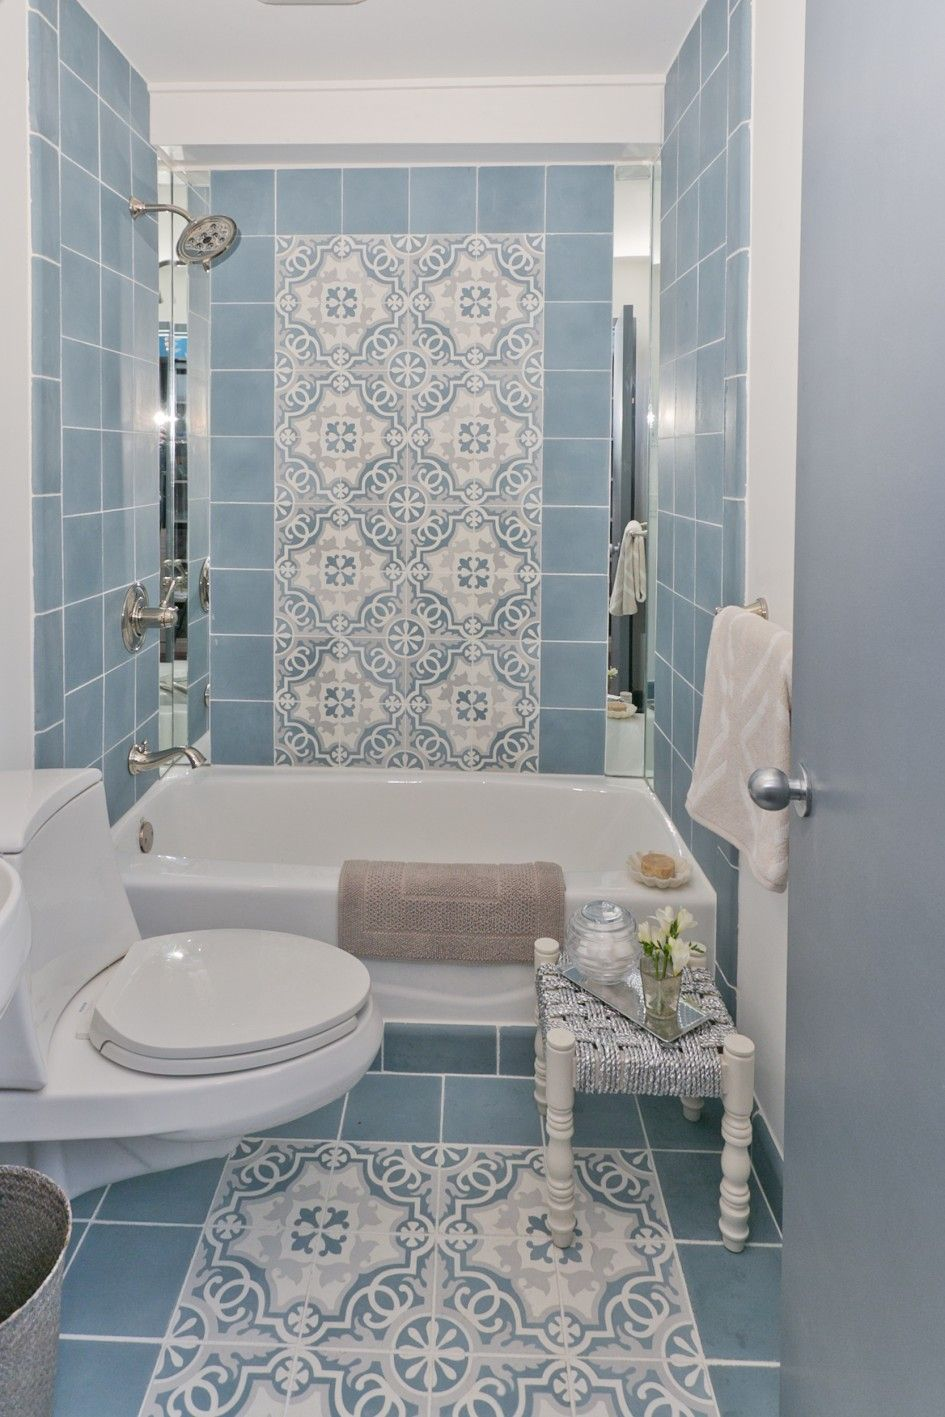 beautiful-minimalist-blue-tile-pattern-bathroom-decor-also